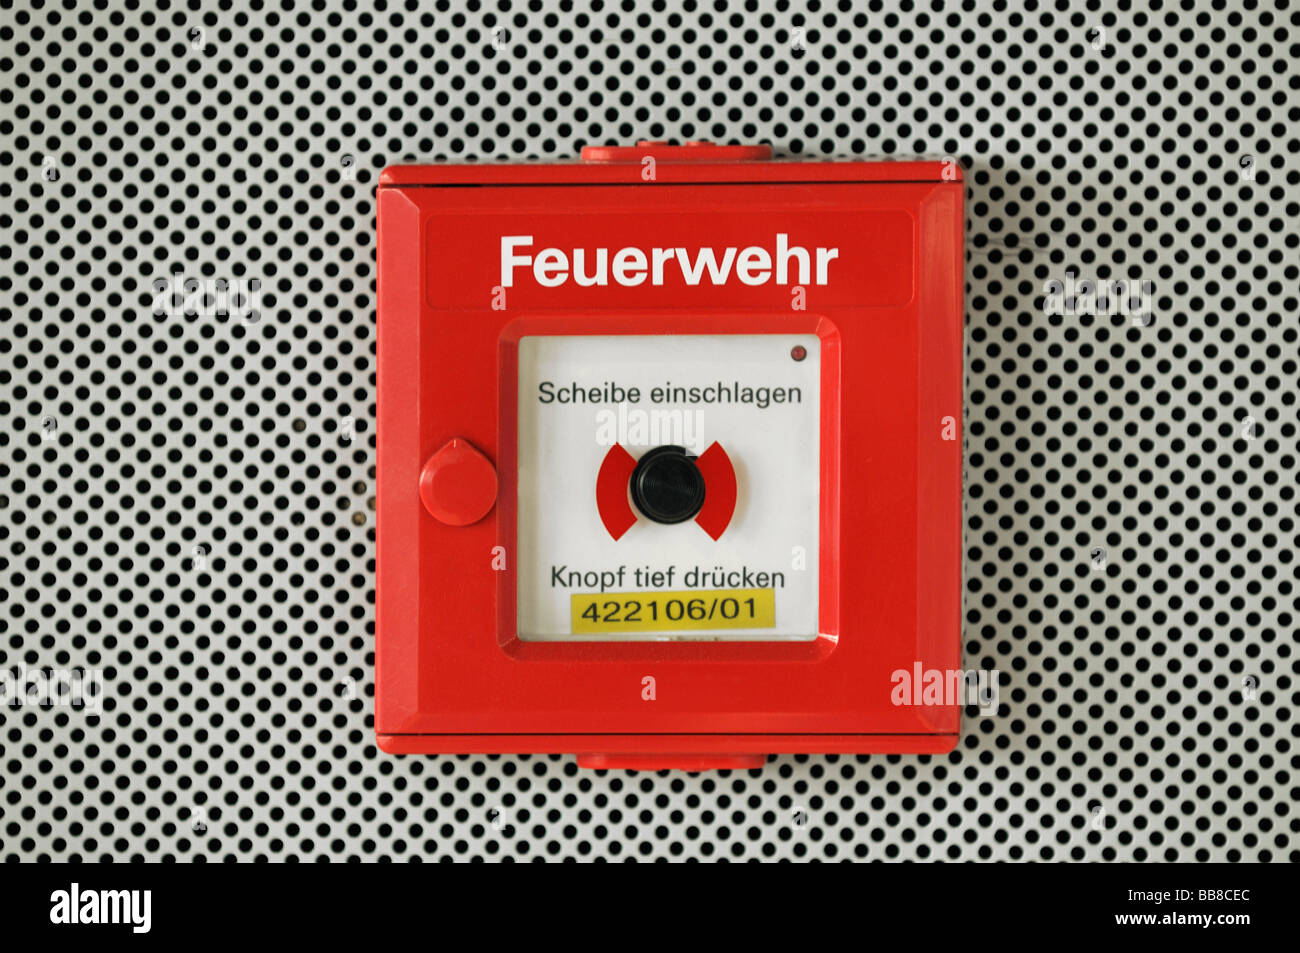 Fire brigade emergency button in red box, smash glass in case of emergency - Stock Image